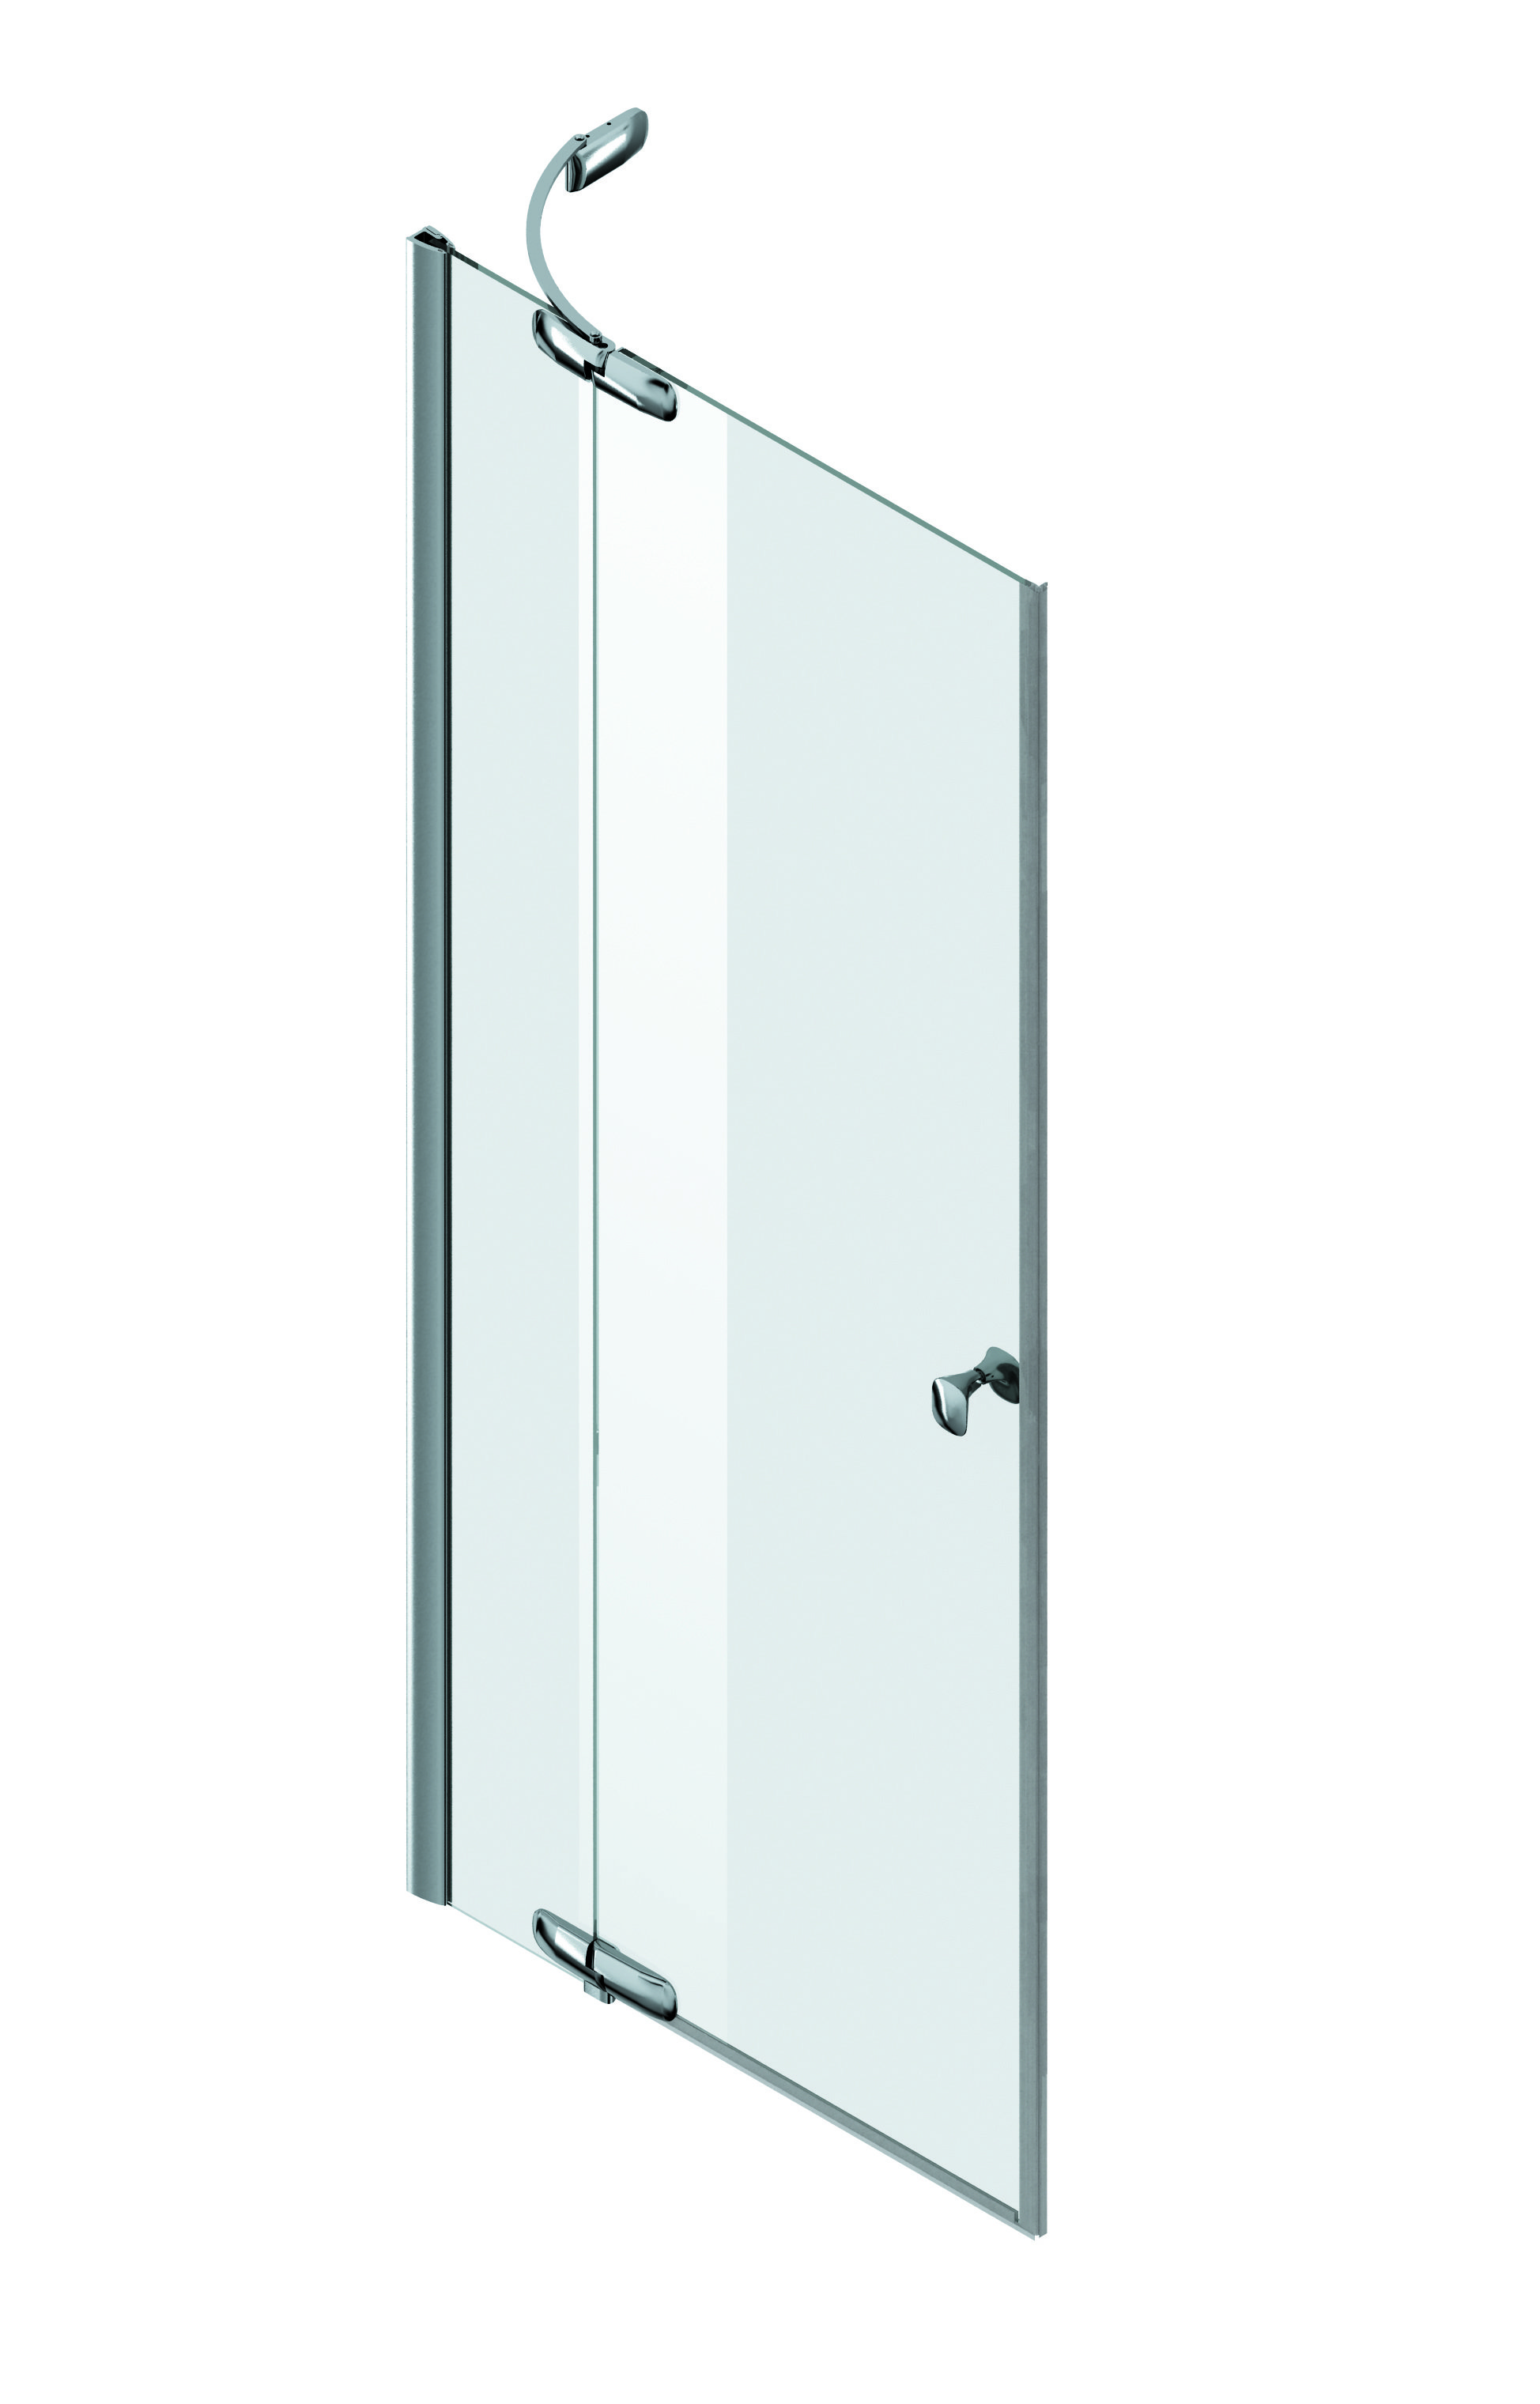 W30G-E3D7-200-CT L/R Pivot door with fixed segment